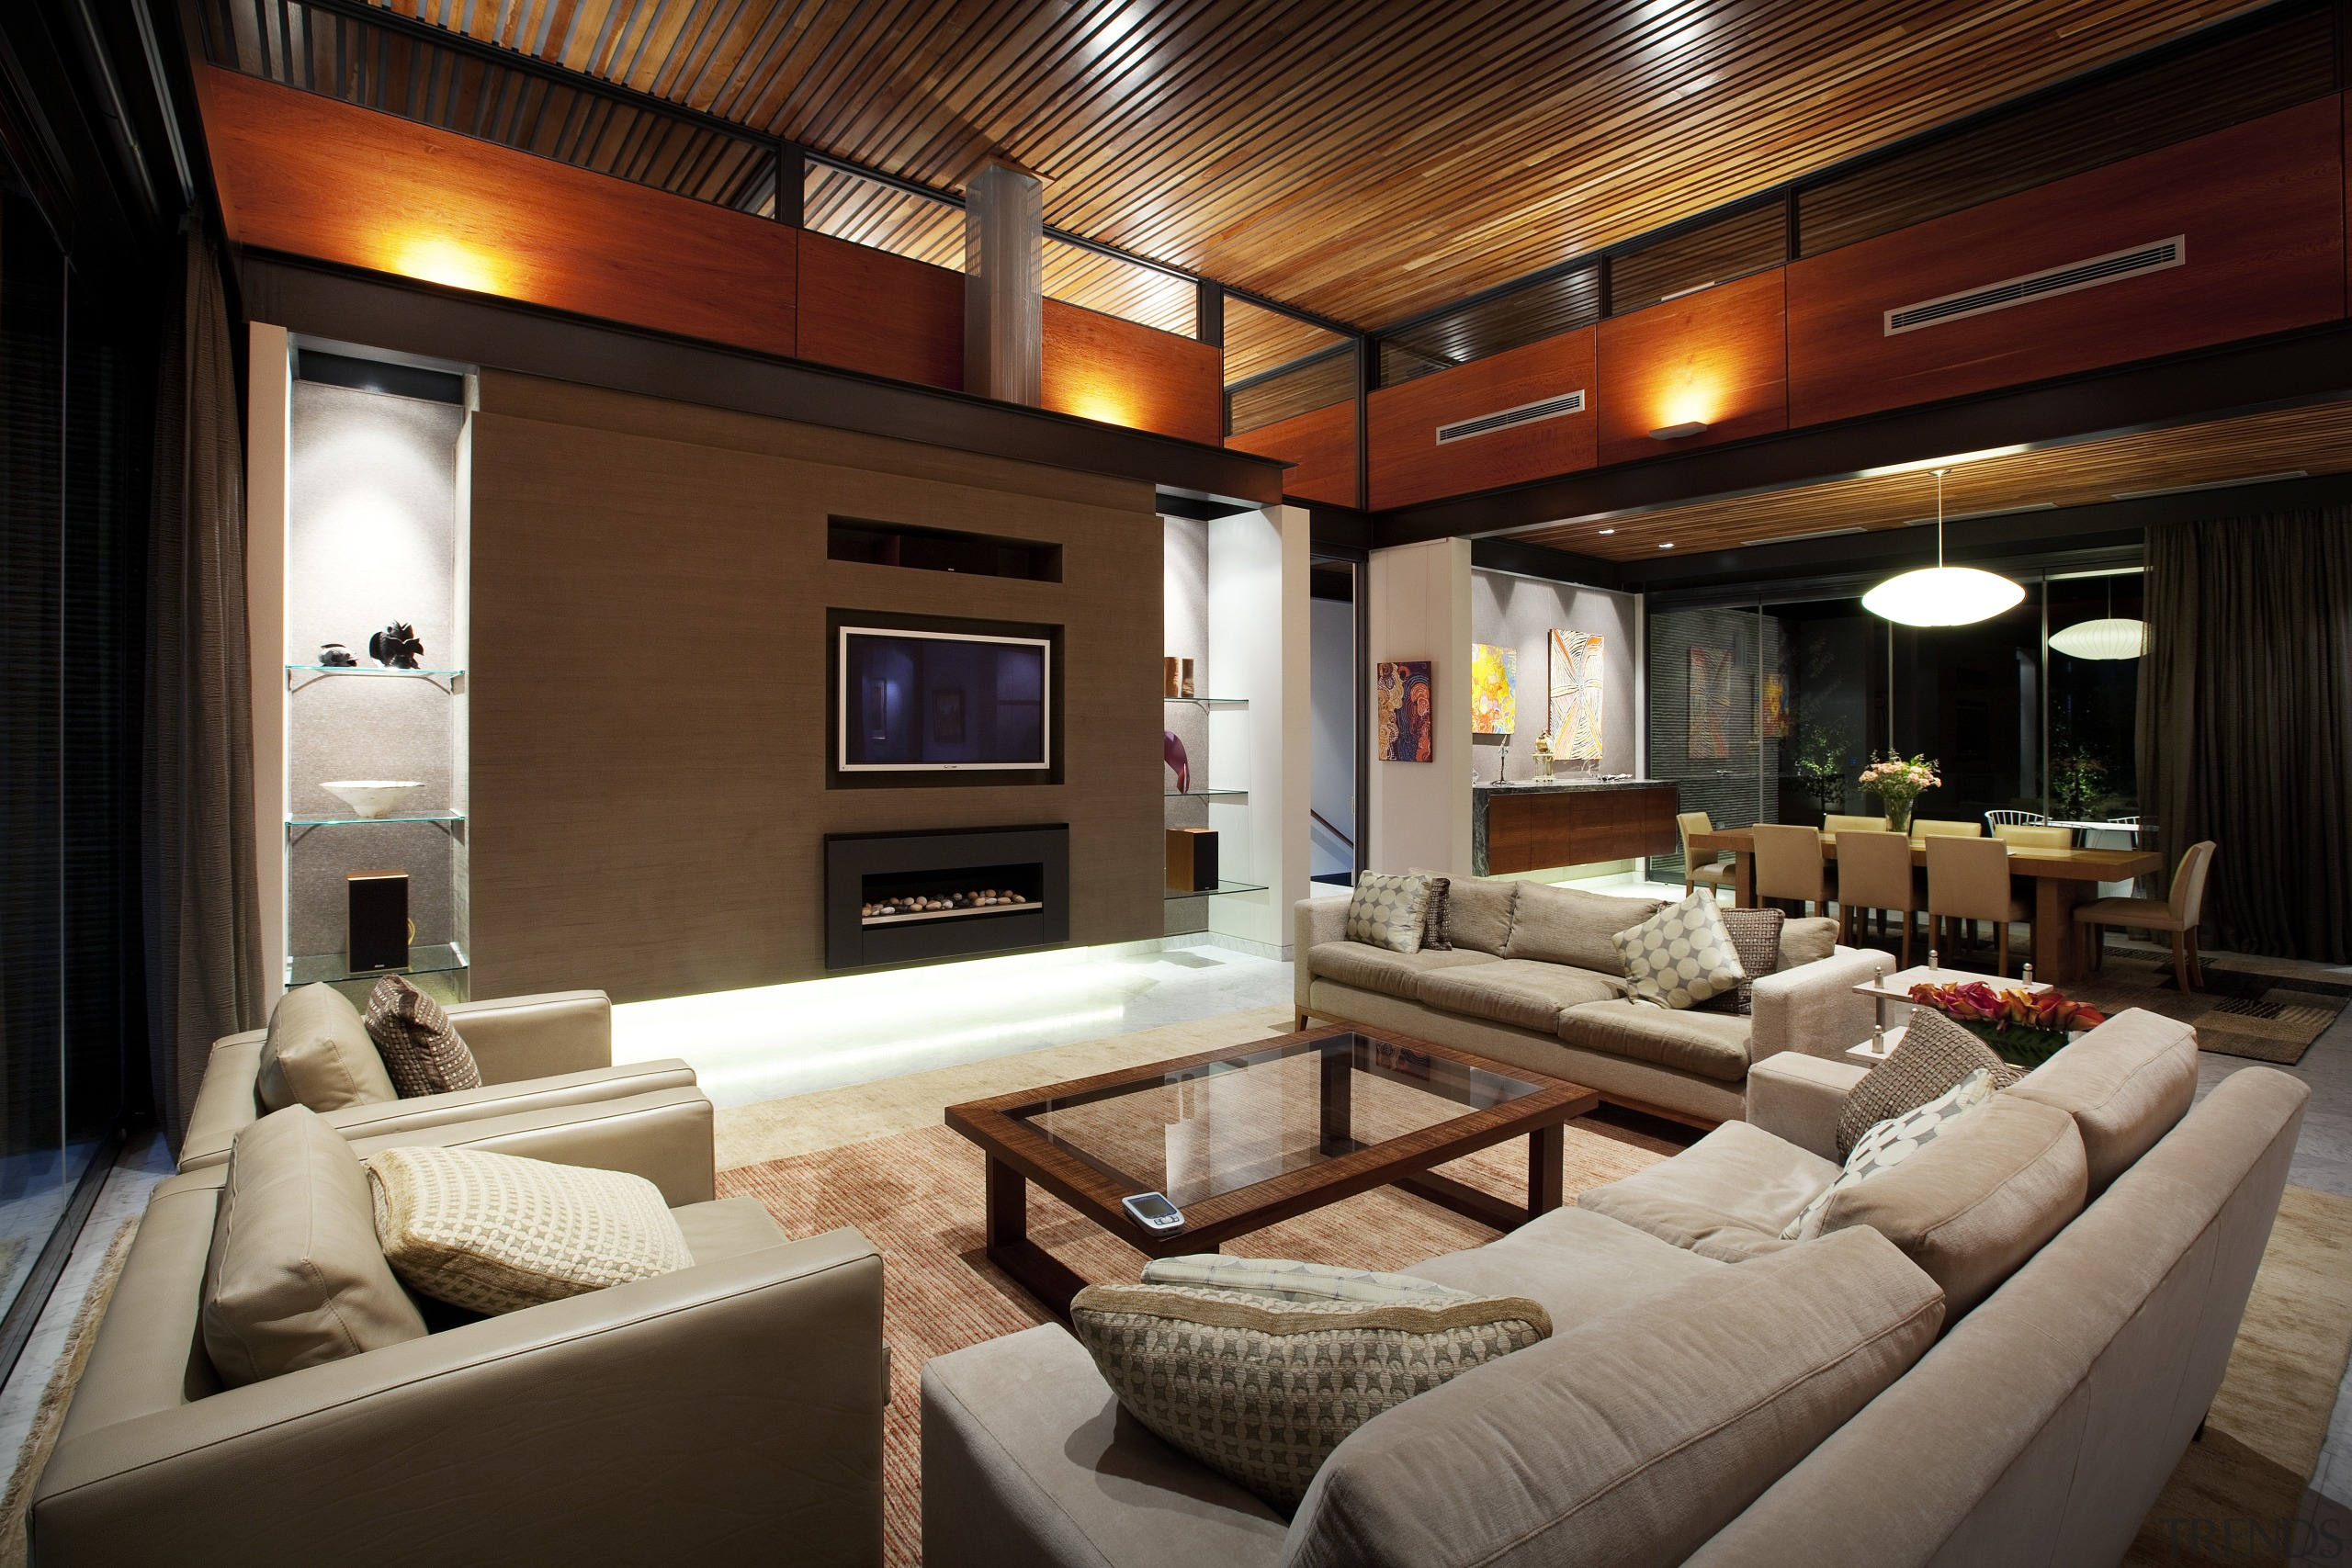 High clerestory windows are a feature of this ceiling, interior design, living room, real estate, room, brown